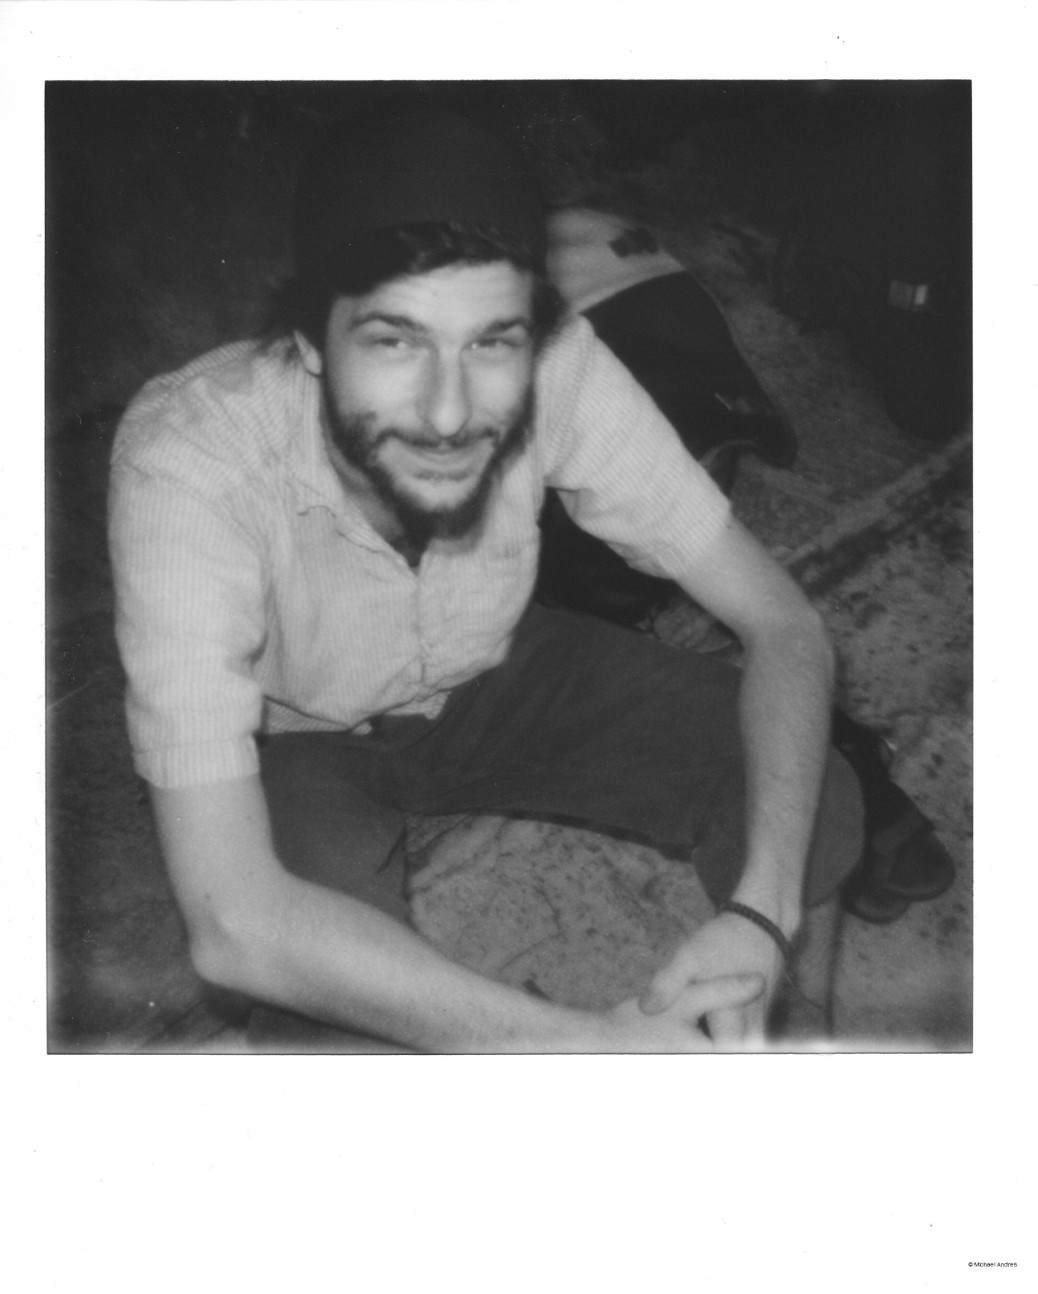 Polaroid 135 - Myself